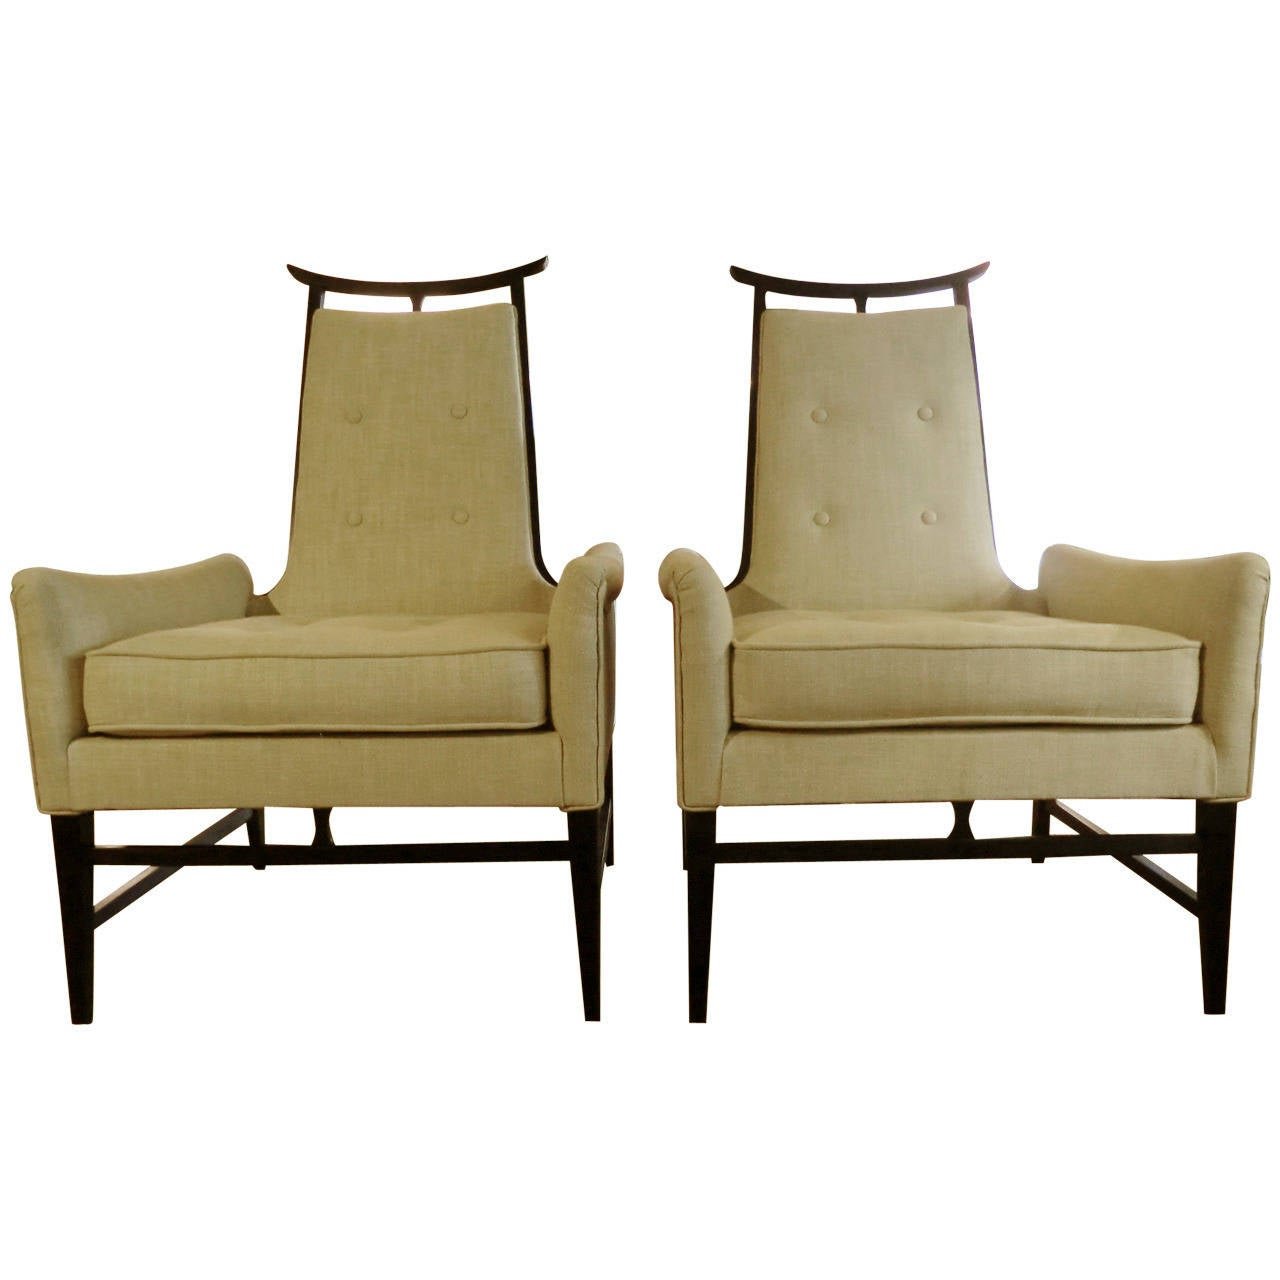 1950s Chinoiserie French Armchairs At 1stdibs